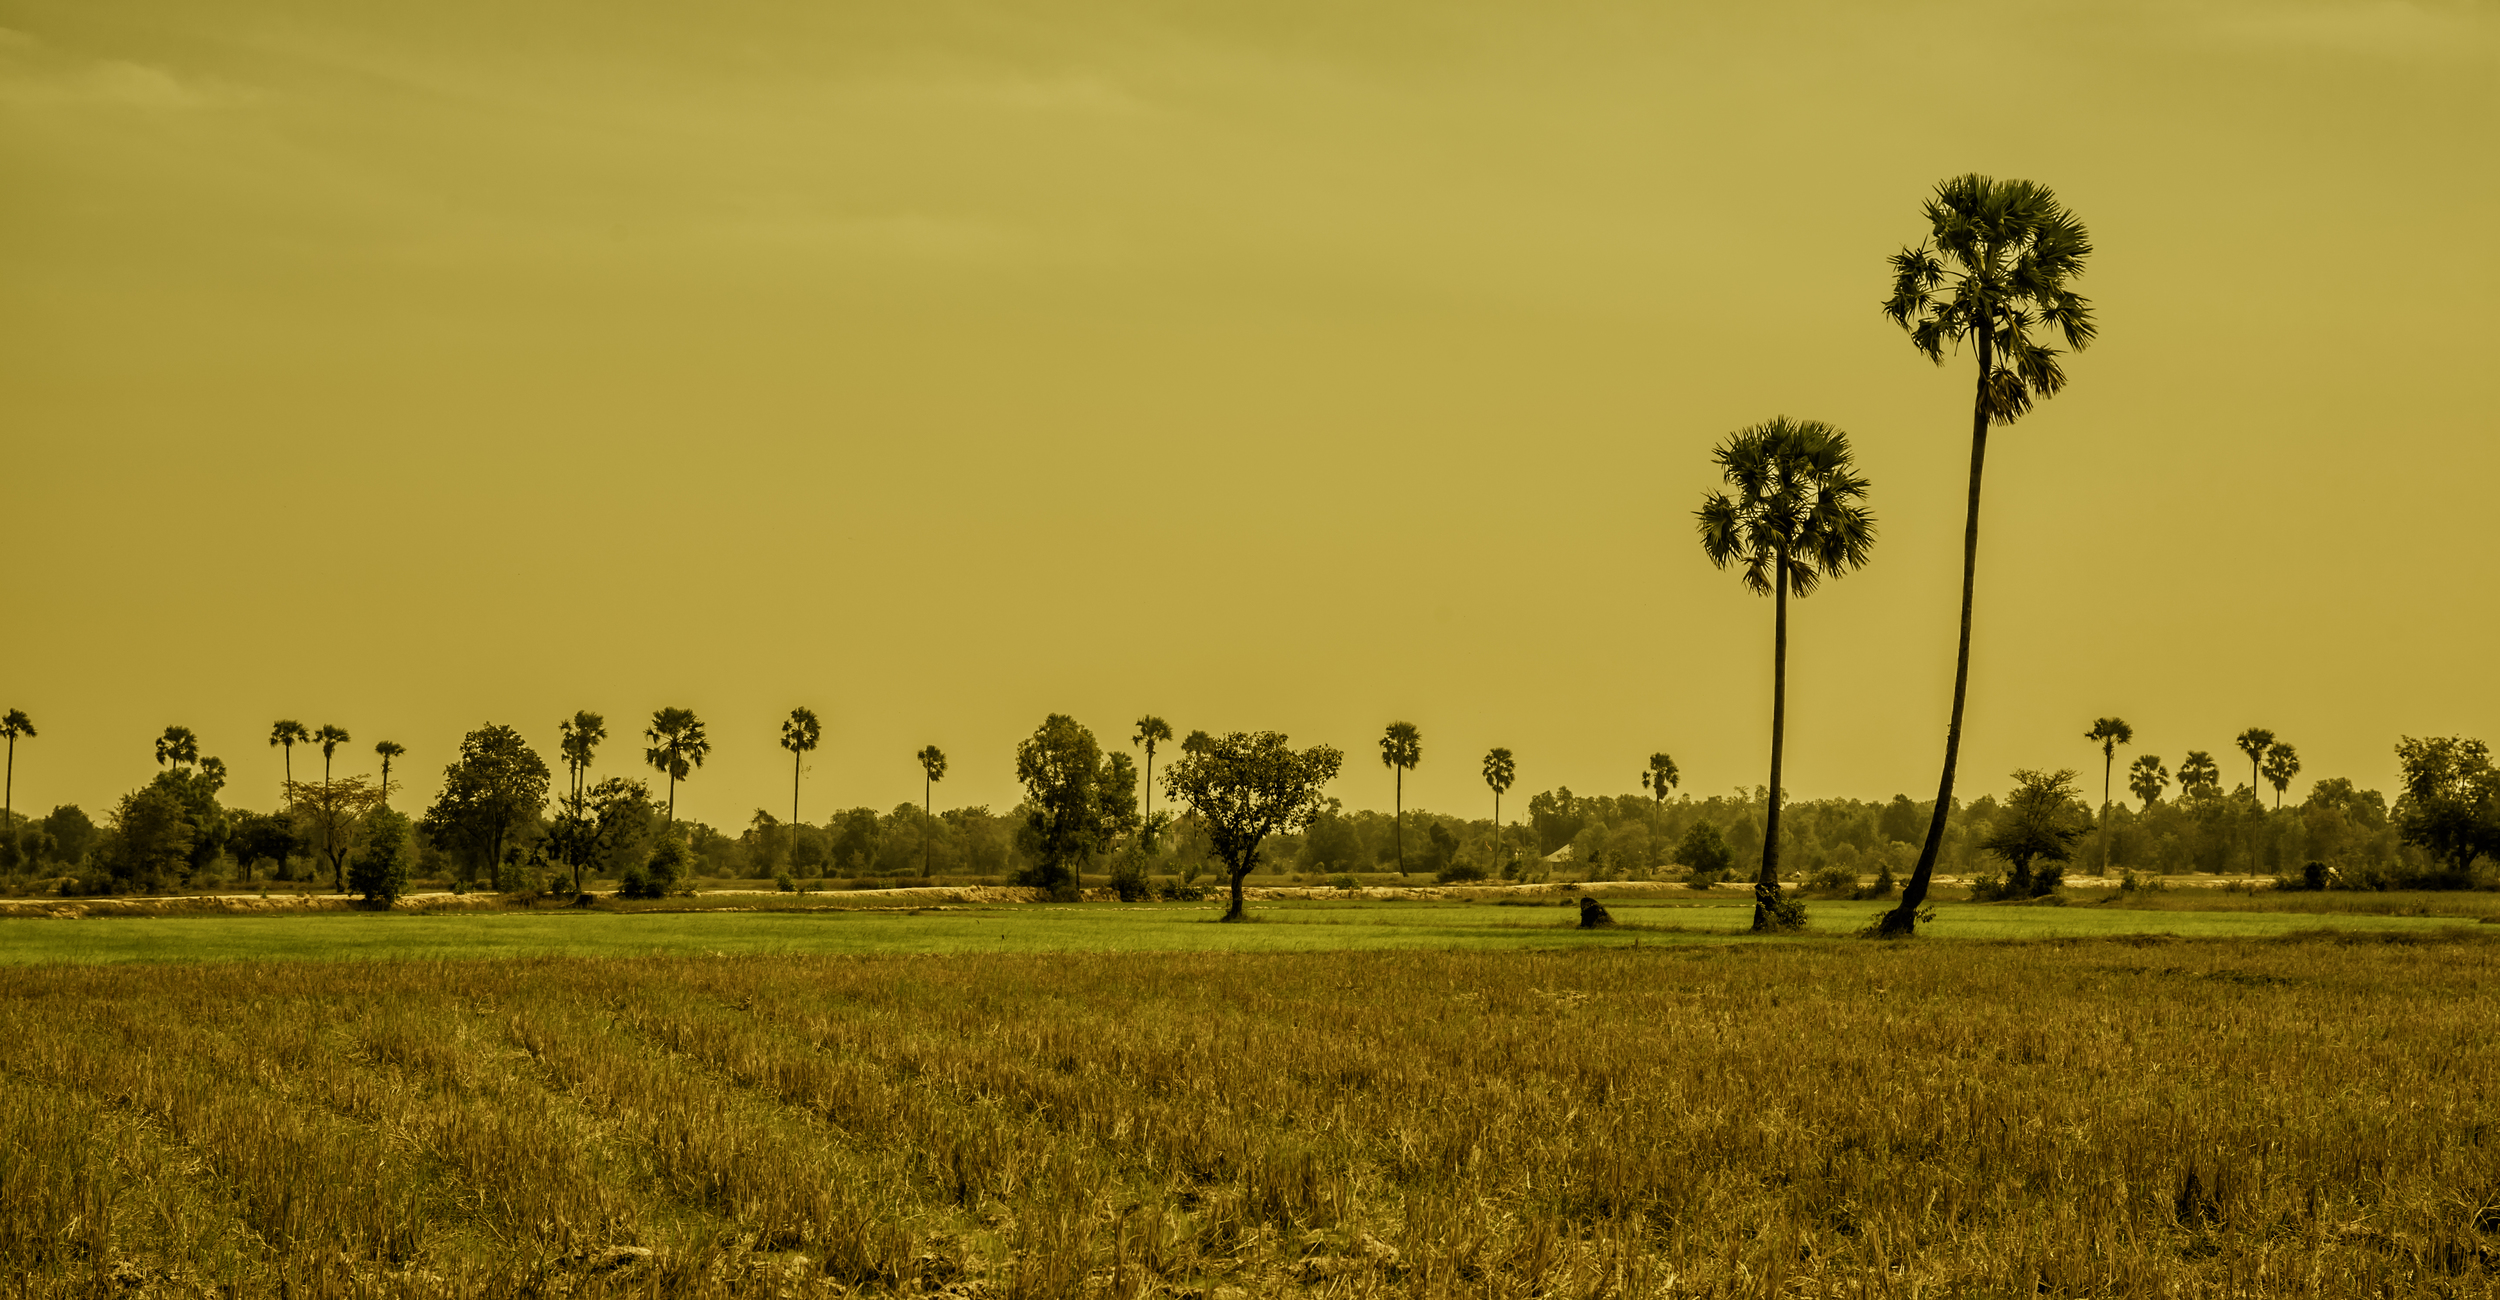 The Golden Curve of the Sugar Palm Tree